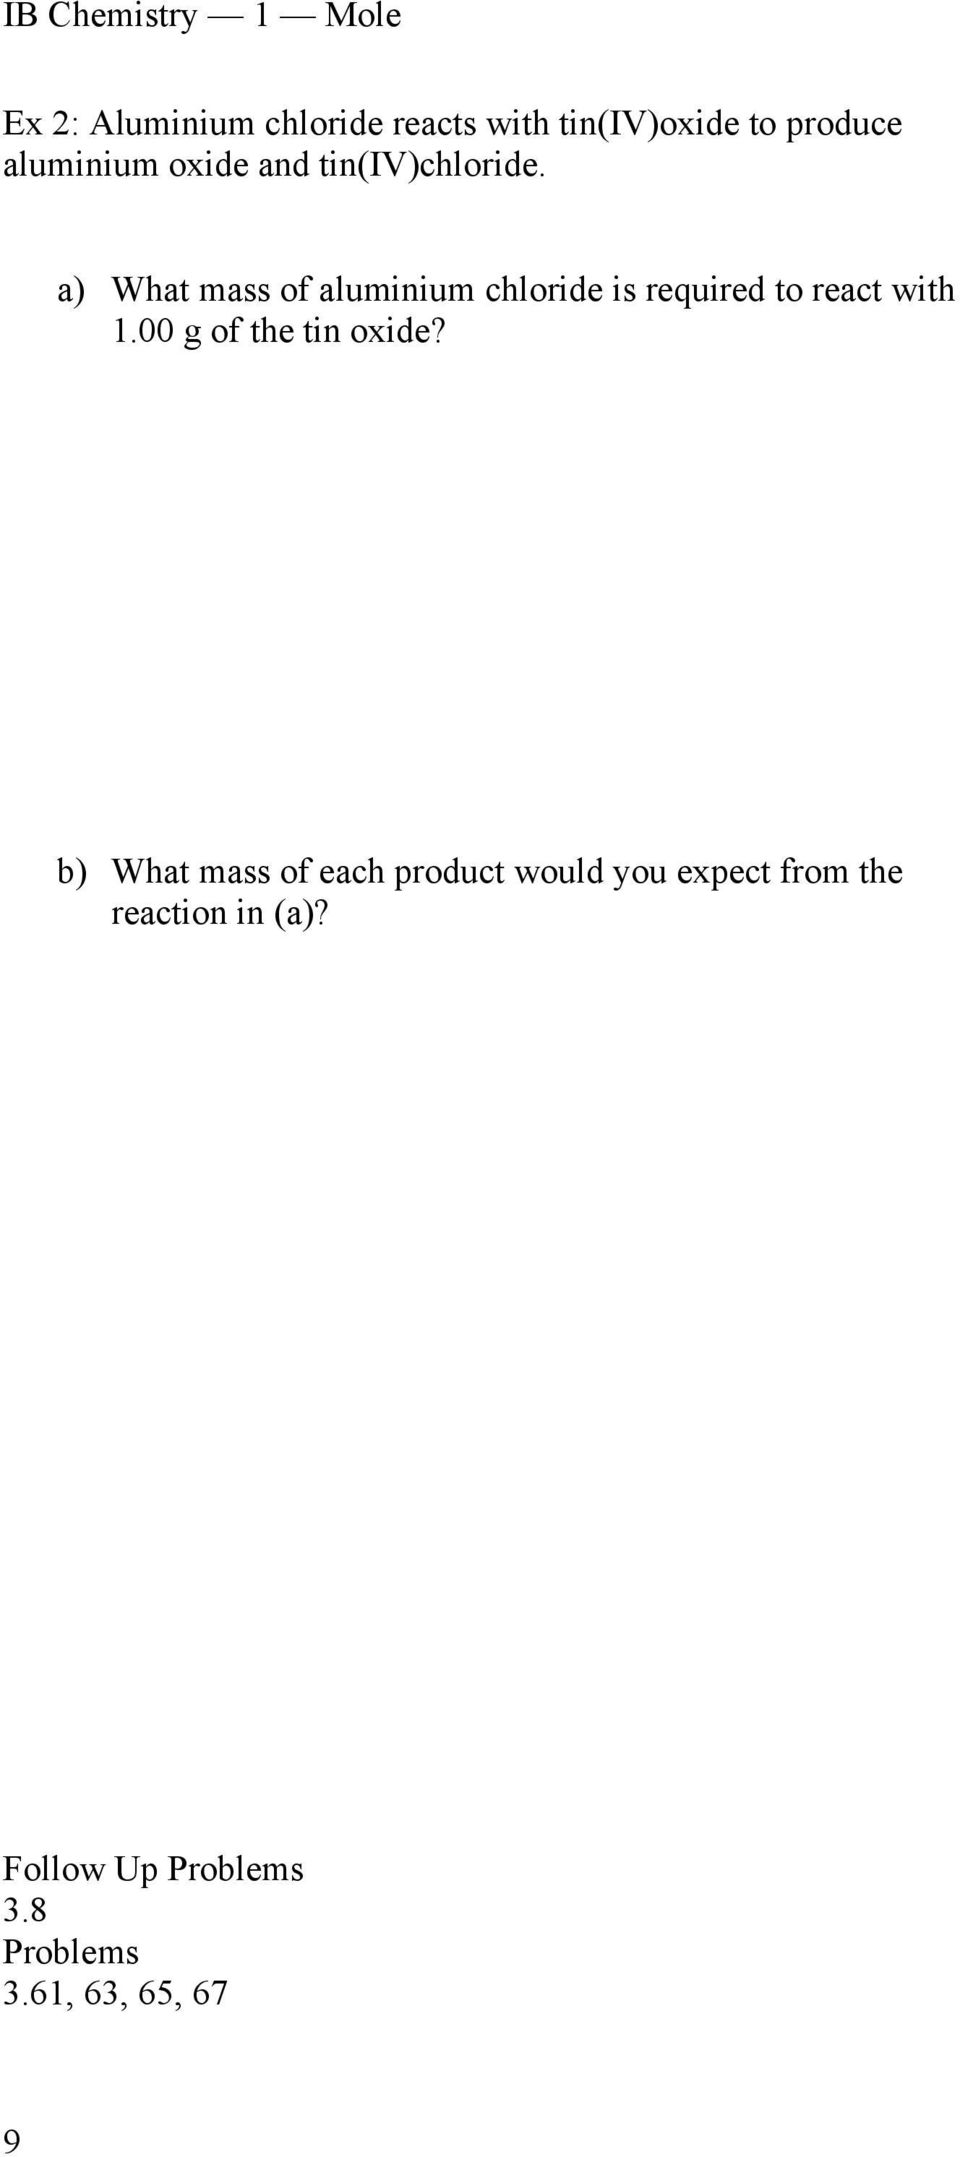 a) What mass of aluminium chloride is required to react with 1.